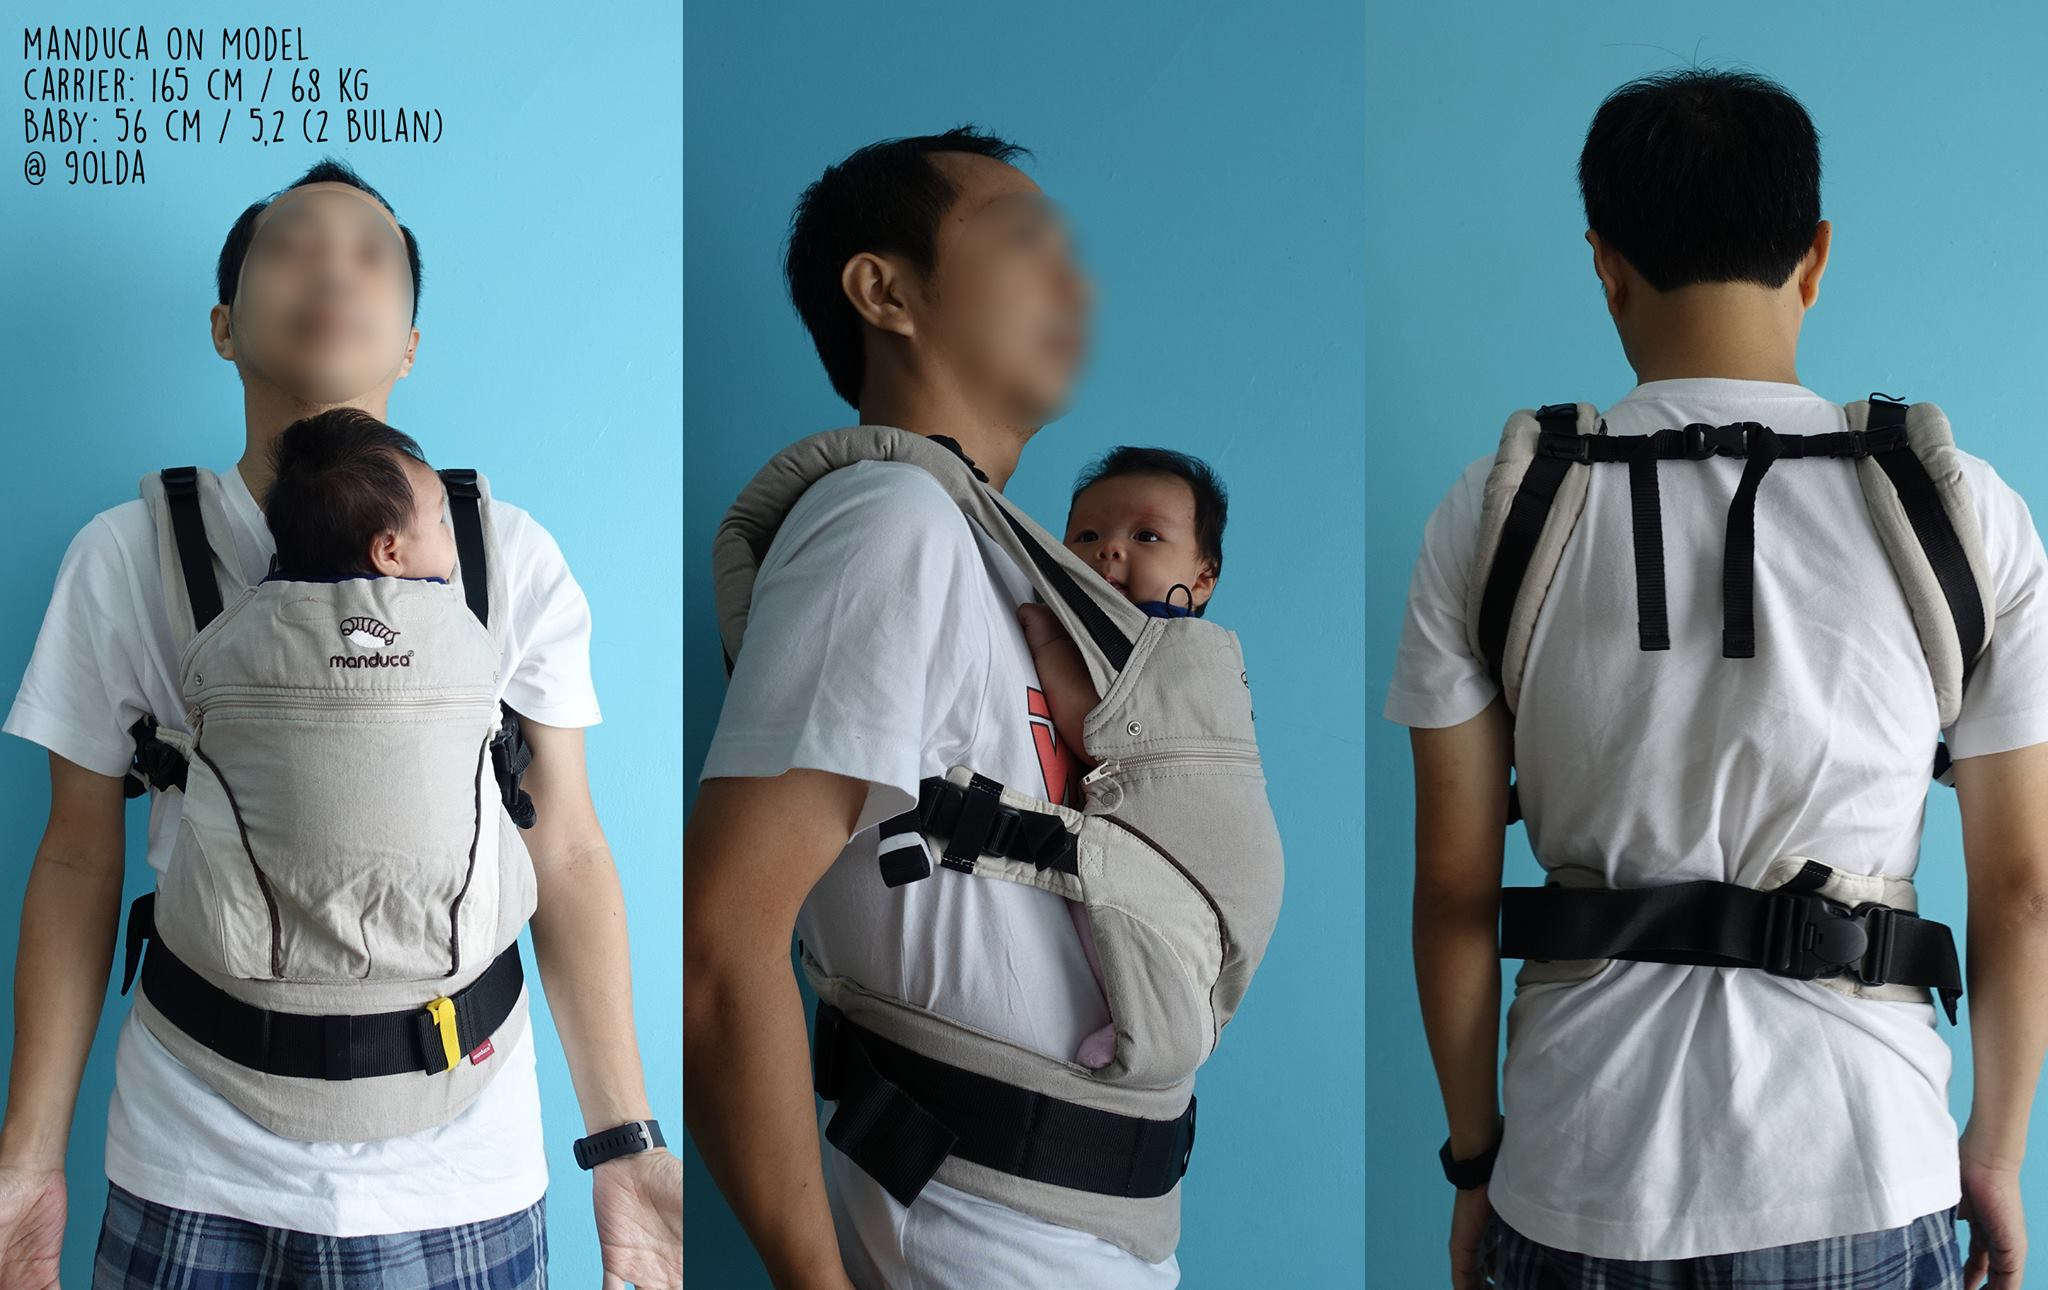 144a65aee8f Review  Soft Structure Carrier Manduca